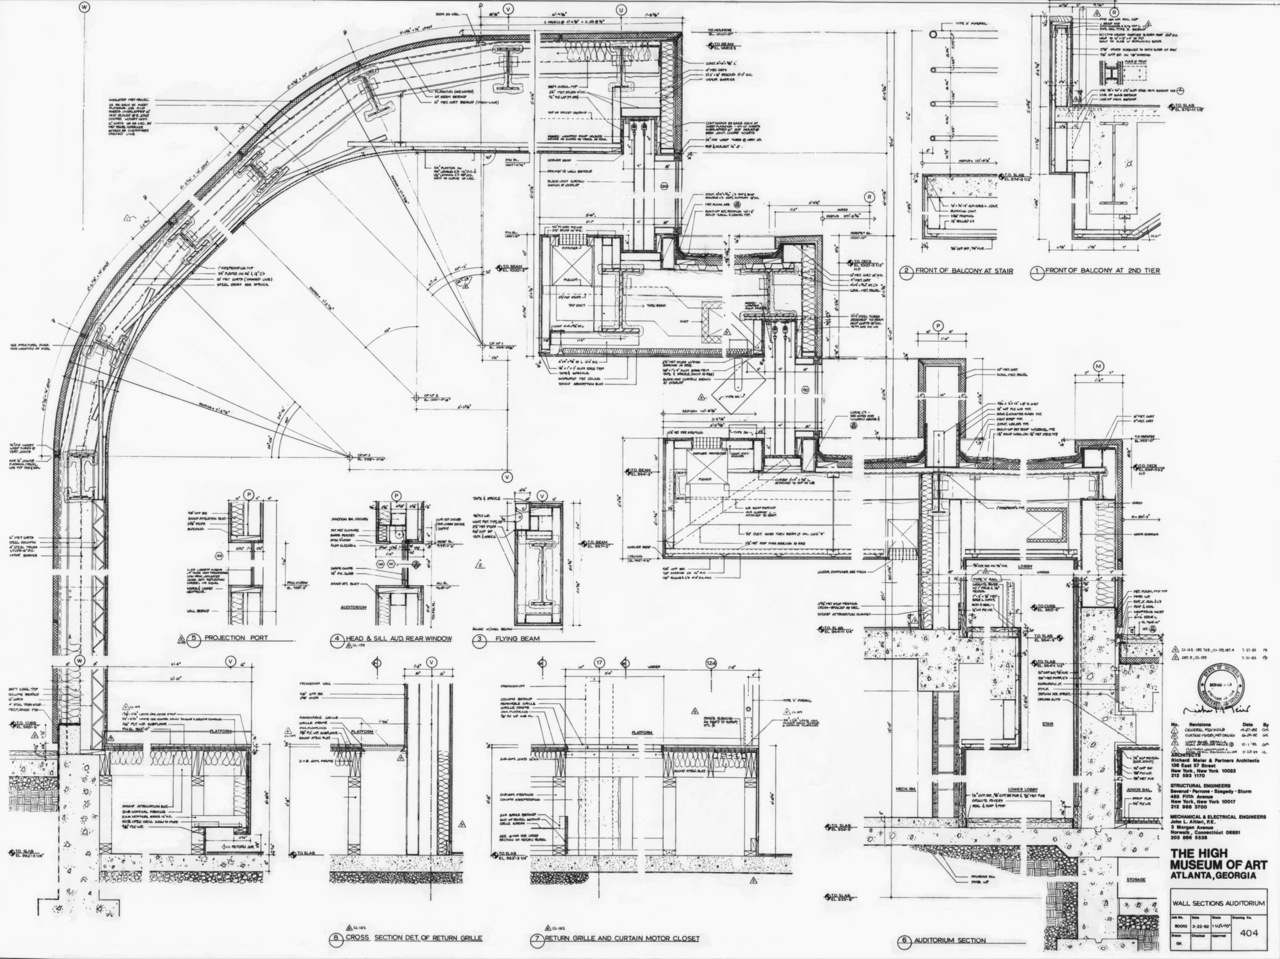 Architectural drawing rich image and wallpaper for Architectural design plans